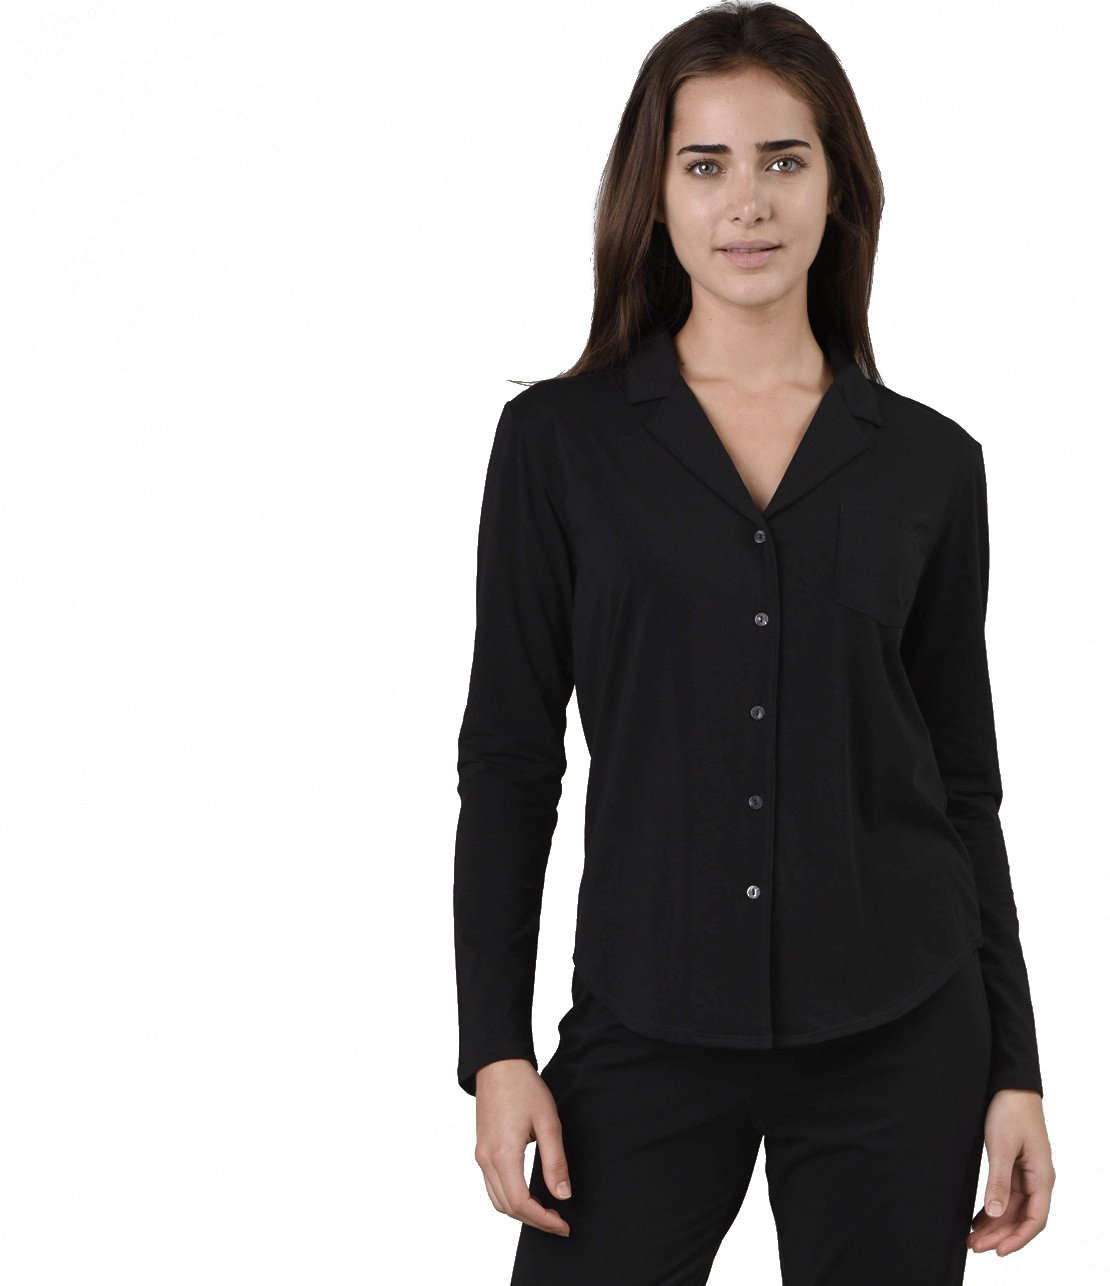 Naked Women's Essential Cotton Spandex Long Sleeve Button-up Pajama Set, Black, Large by Naked (Image #1)